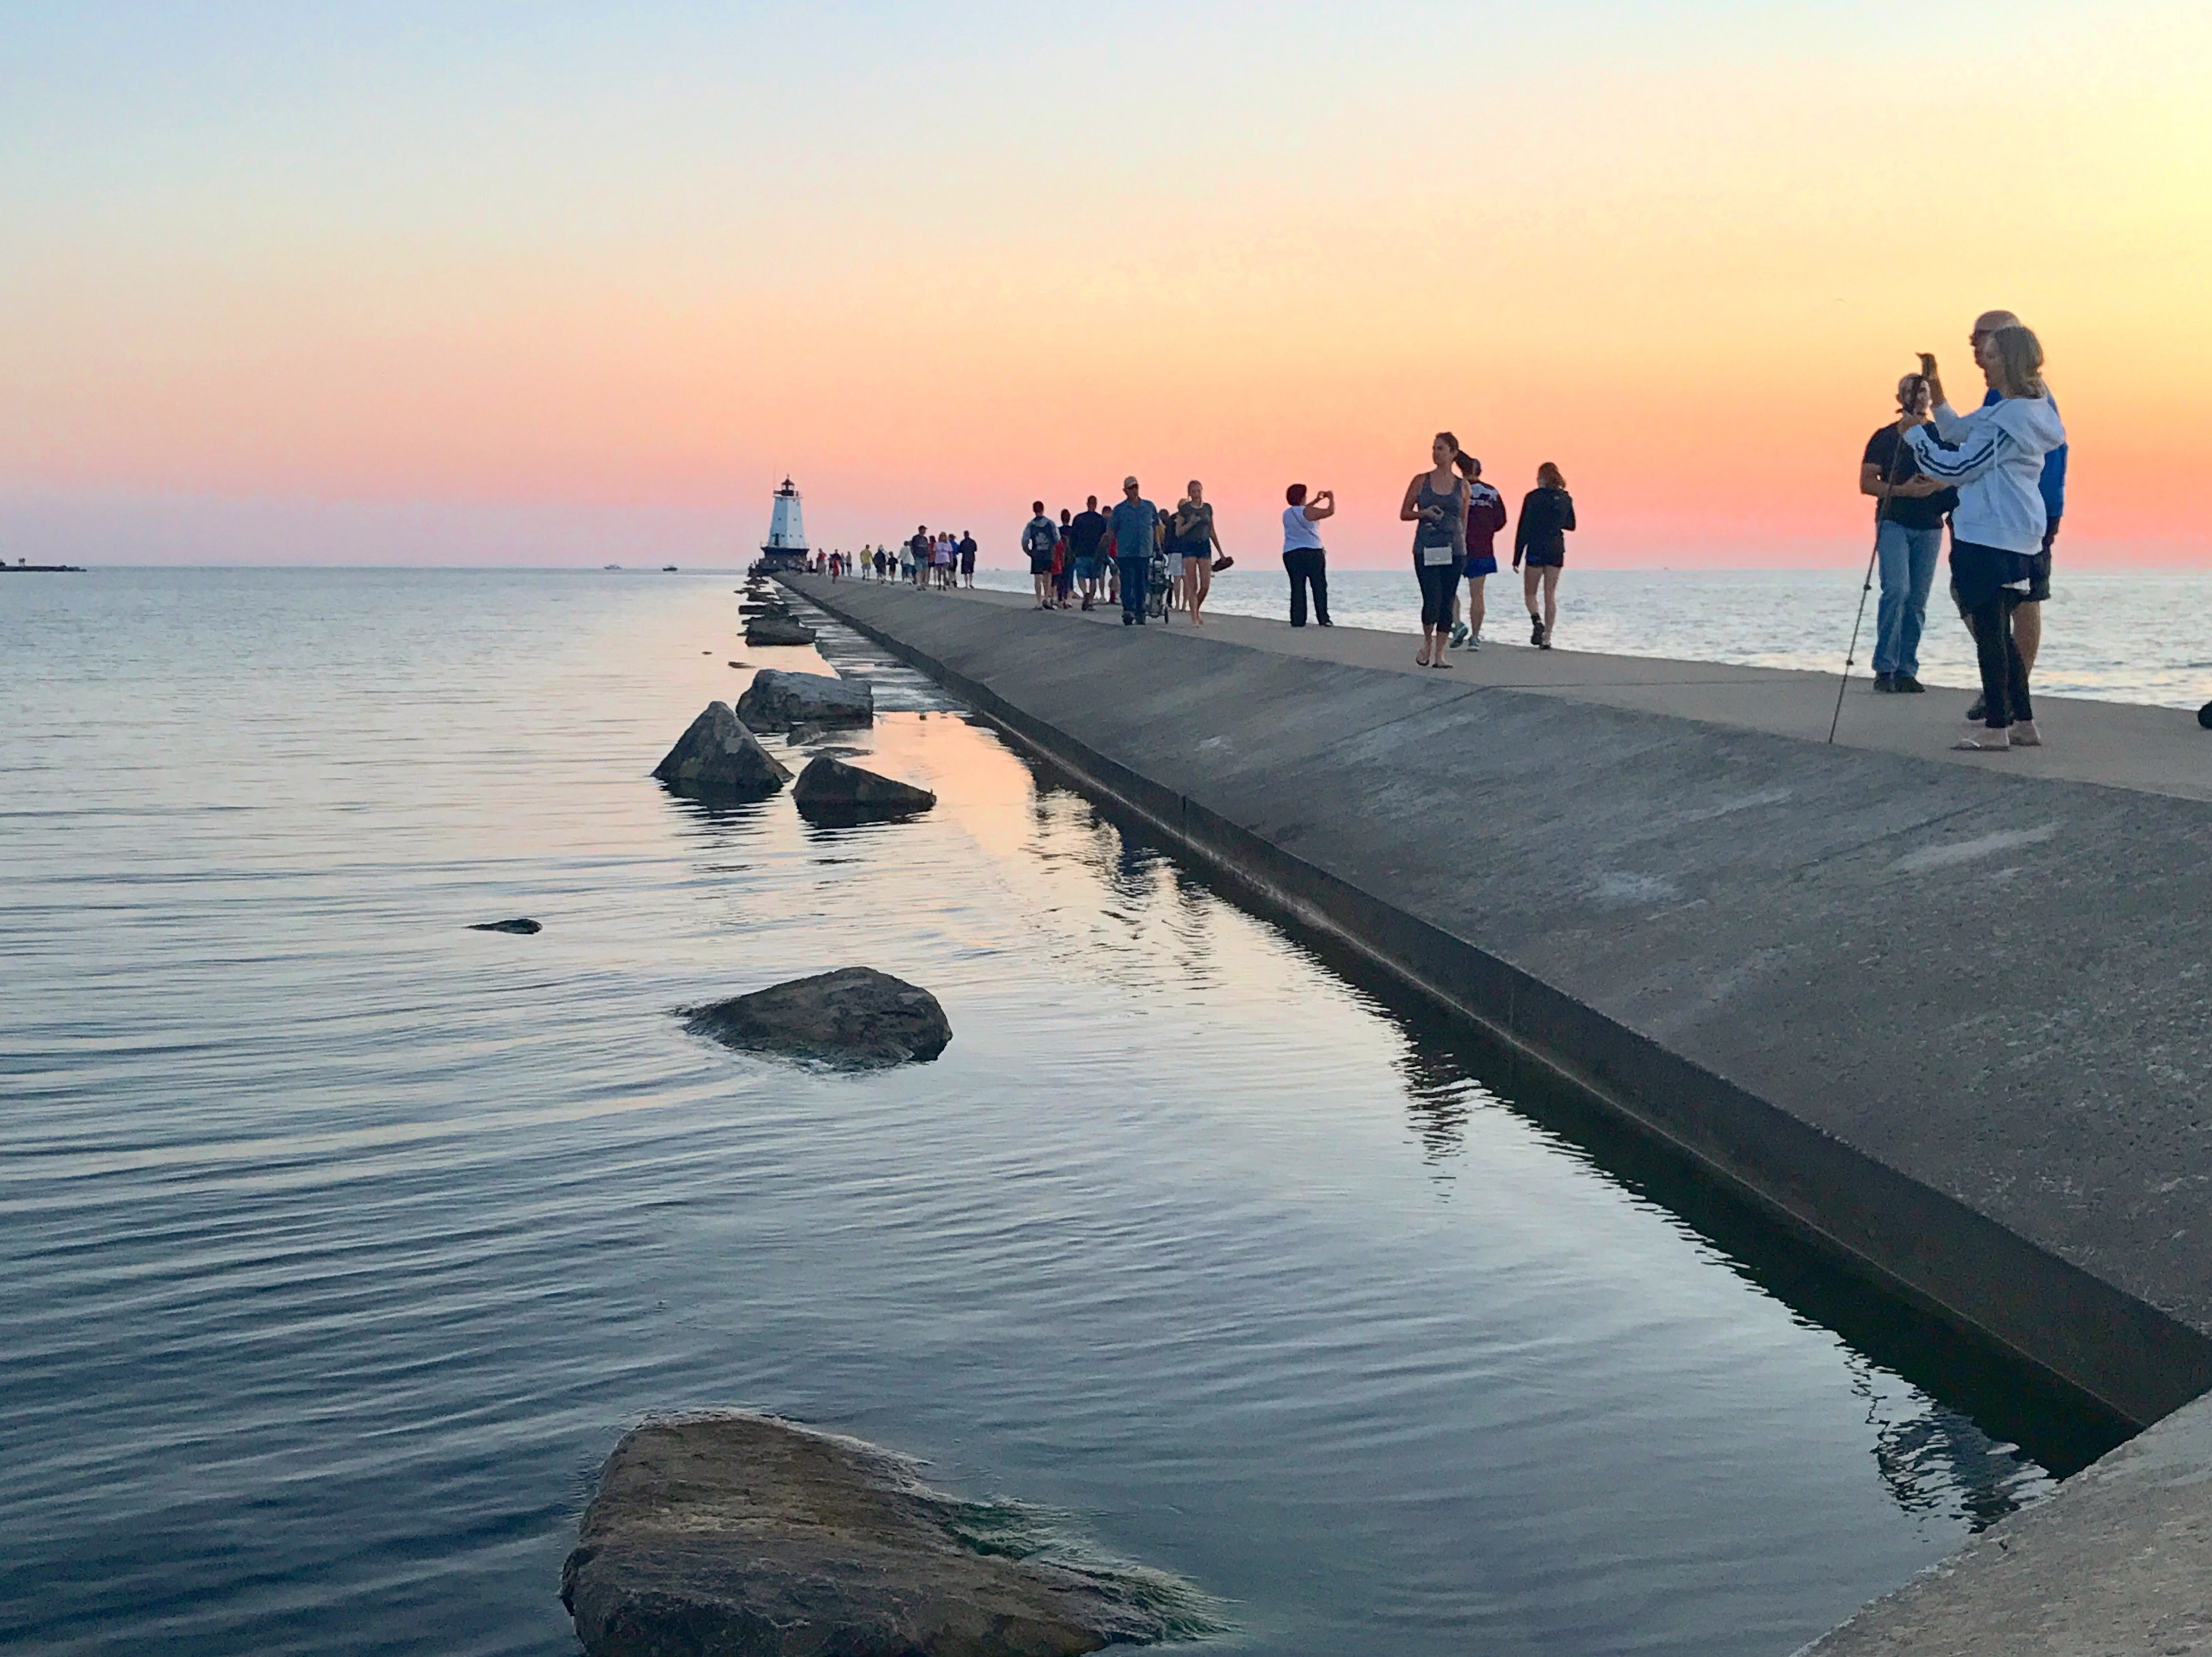 Copy of Ludington North Breakwater Sunset - B Henderson.JPG